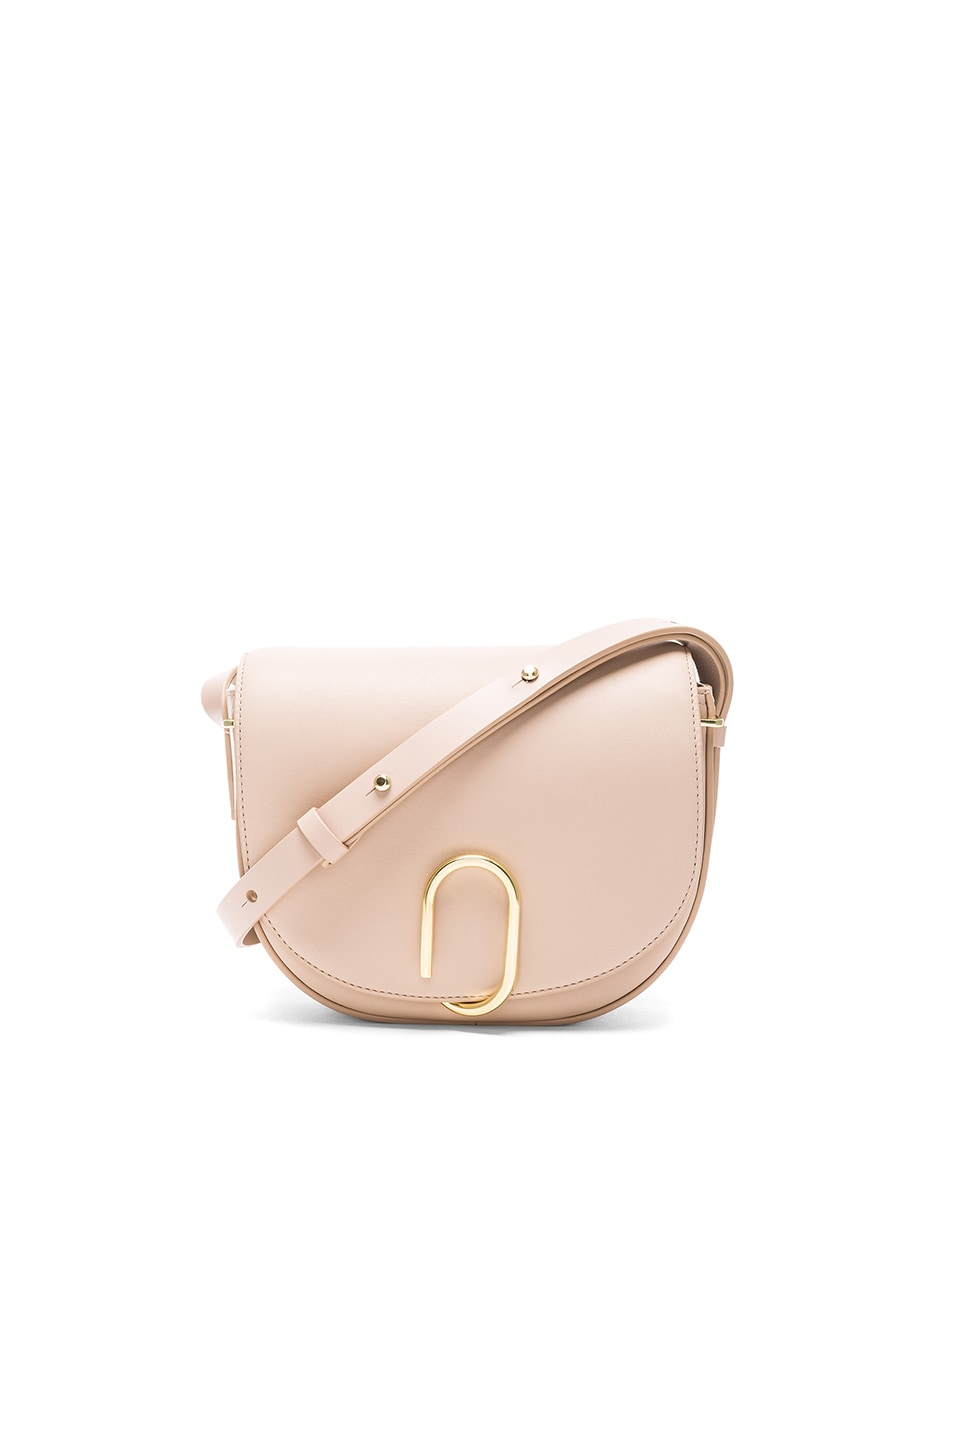 Image 1 of 3.1 phillip lim Alix Saddle Crossbody Bag in Cashew